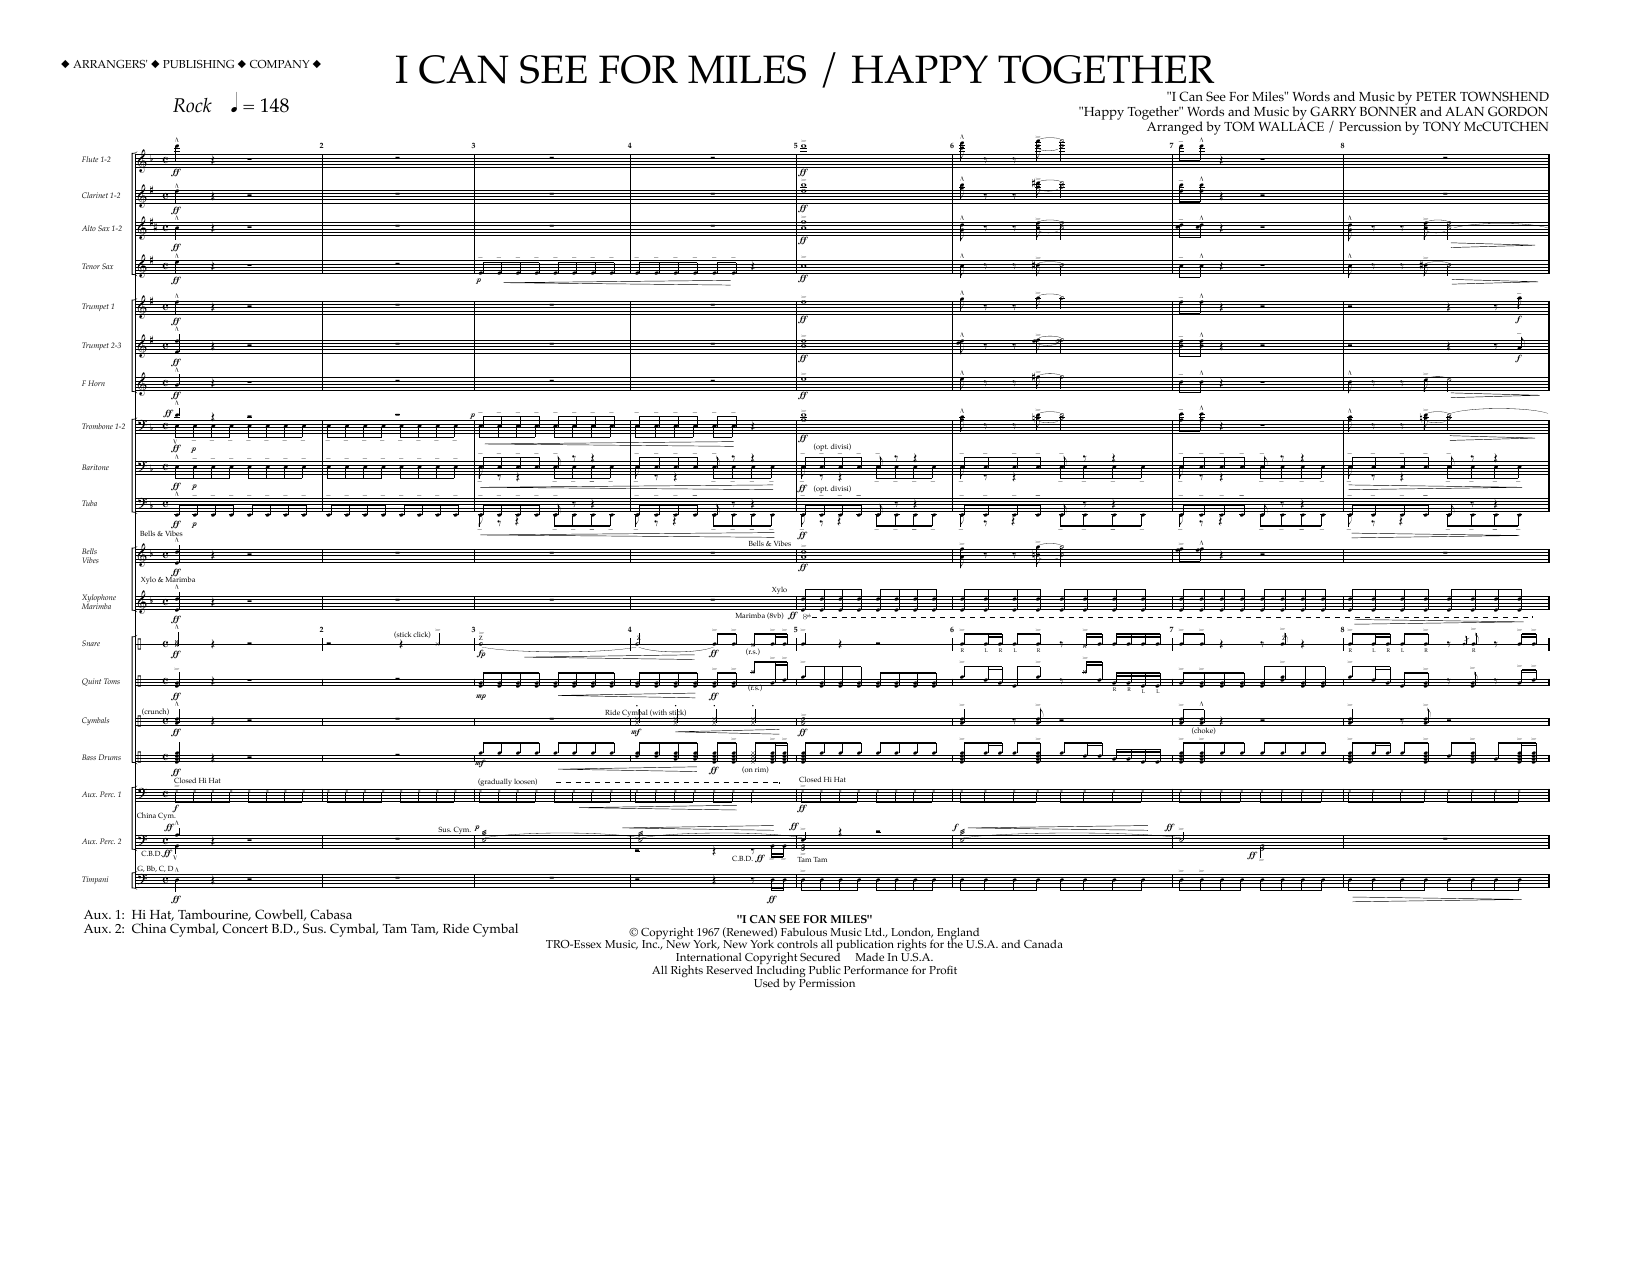 I Can See for Miles/Happy Together - Full Score Sheet Music